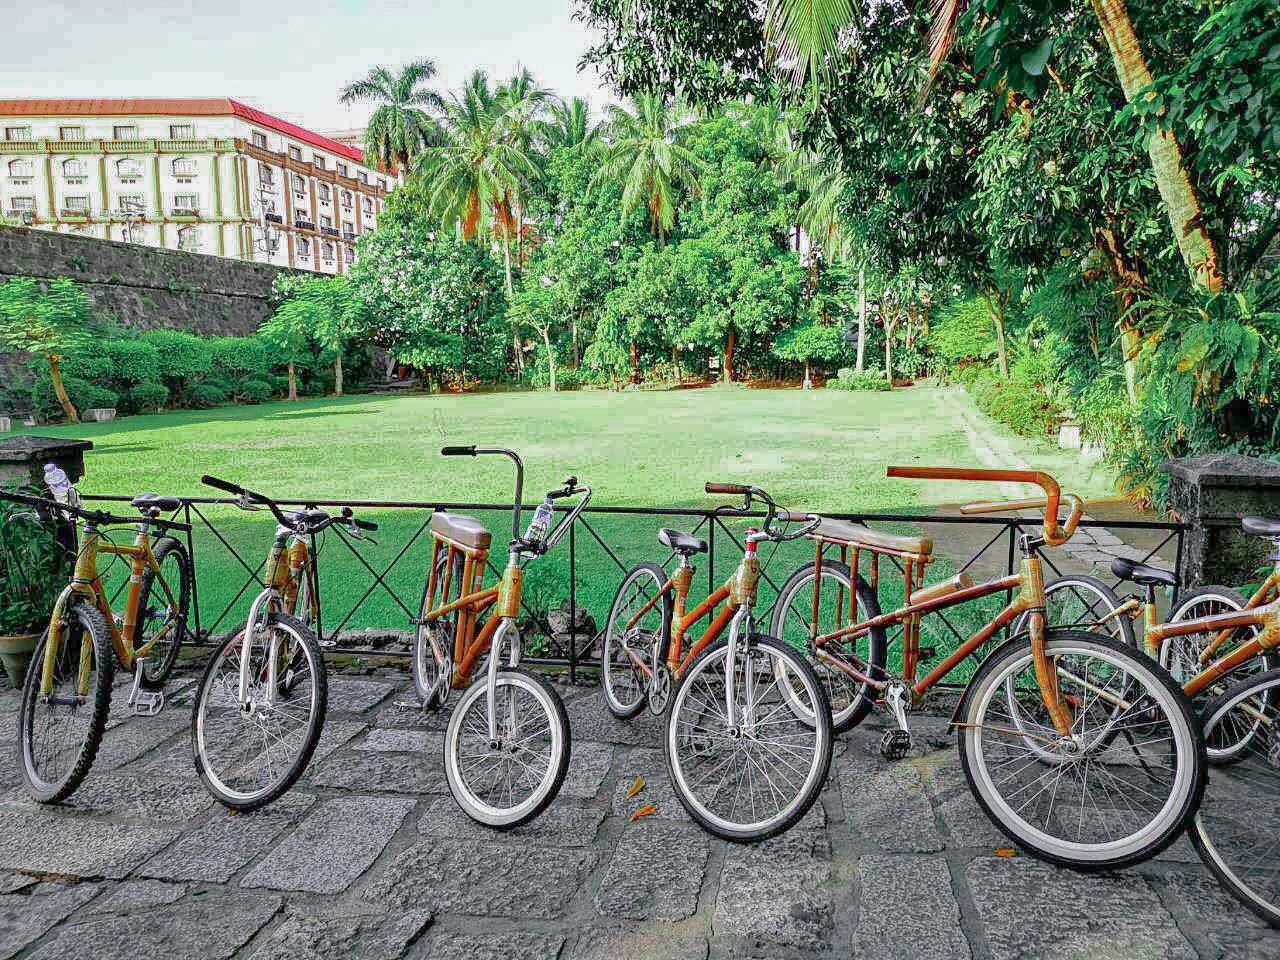 Historical Intramuros Manila Guided Tour in Eco-Friendly Bamboo Bikes